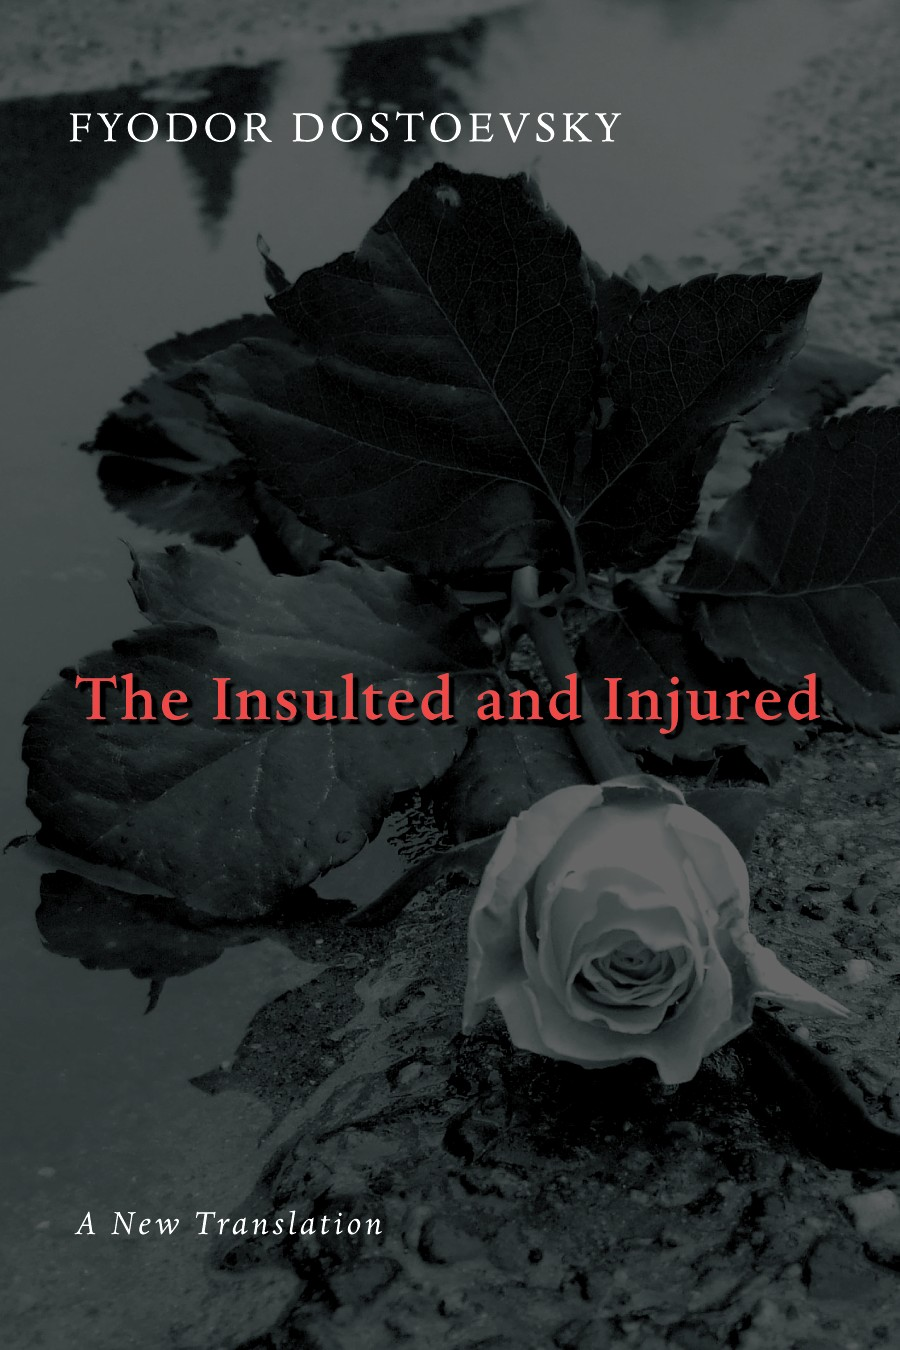 The Insulted and Injured by Fyodor Dostoevsky